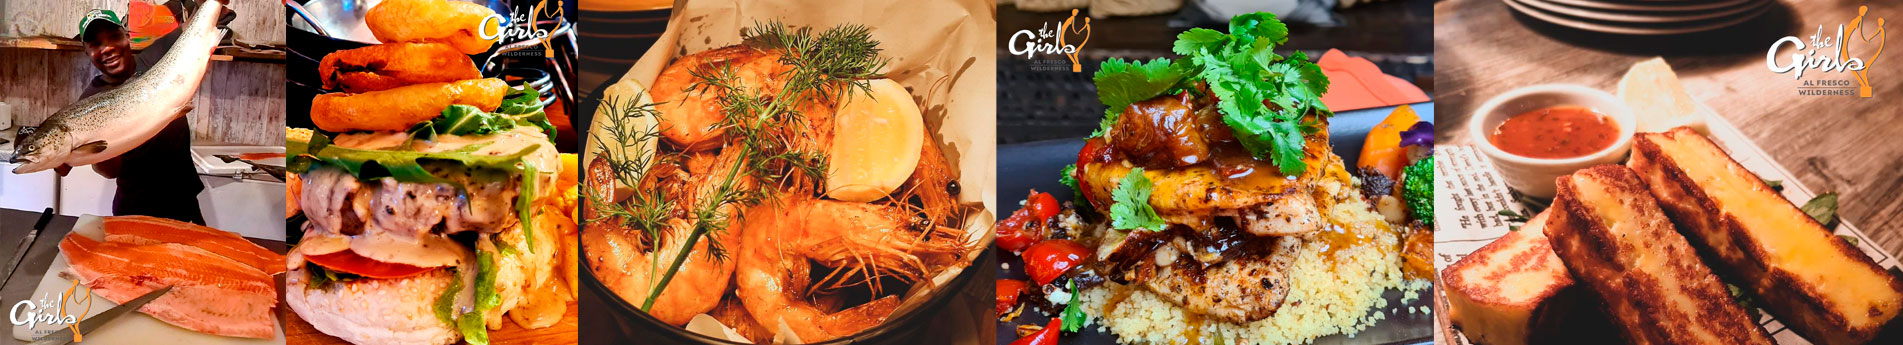 Delicious freshly prepared meals at The Girls on the Square restaurant in Wilderness